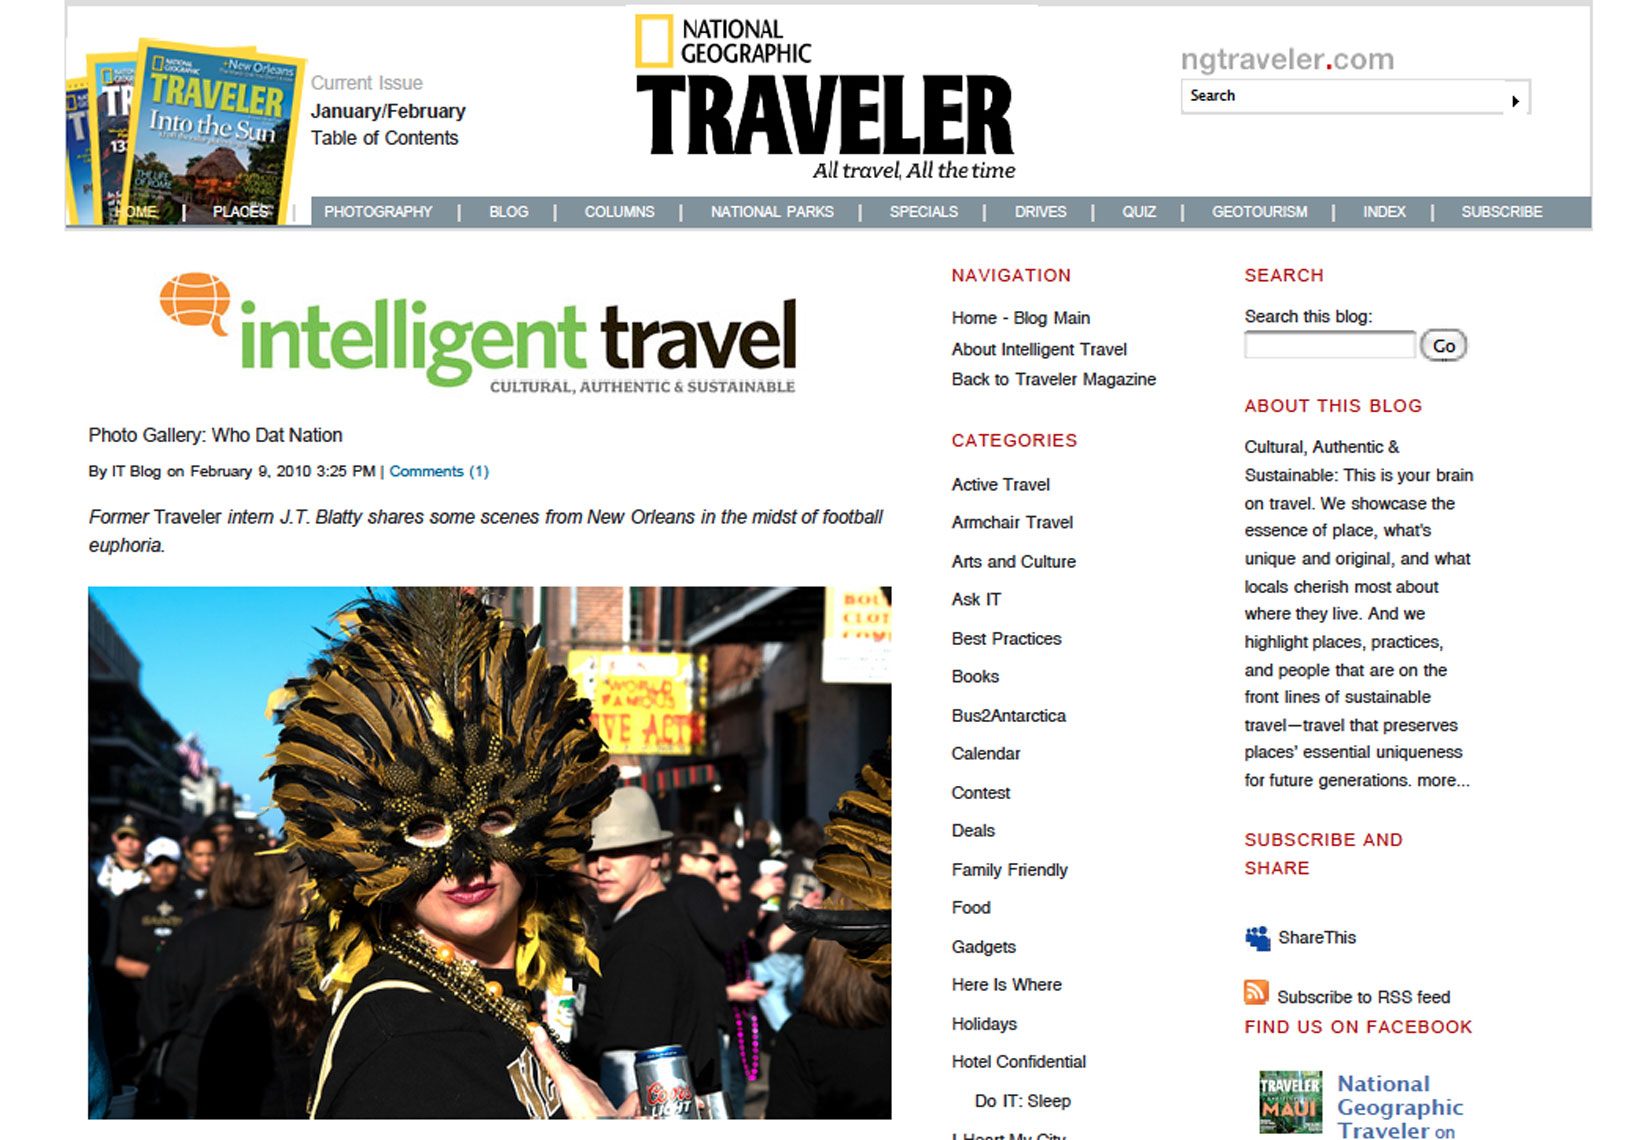 National Geographic Traveler: Who Dat Nation Photo Gallery